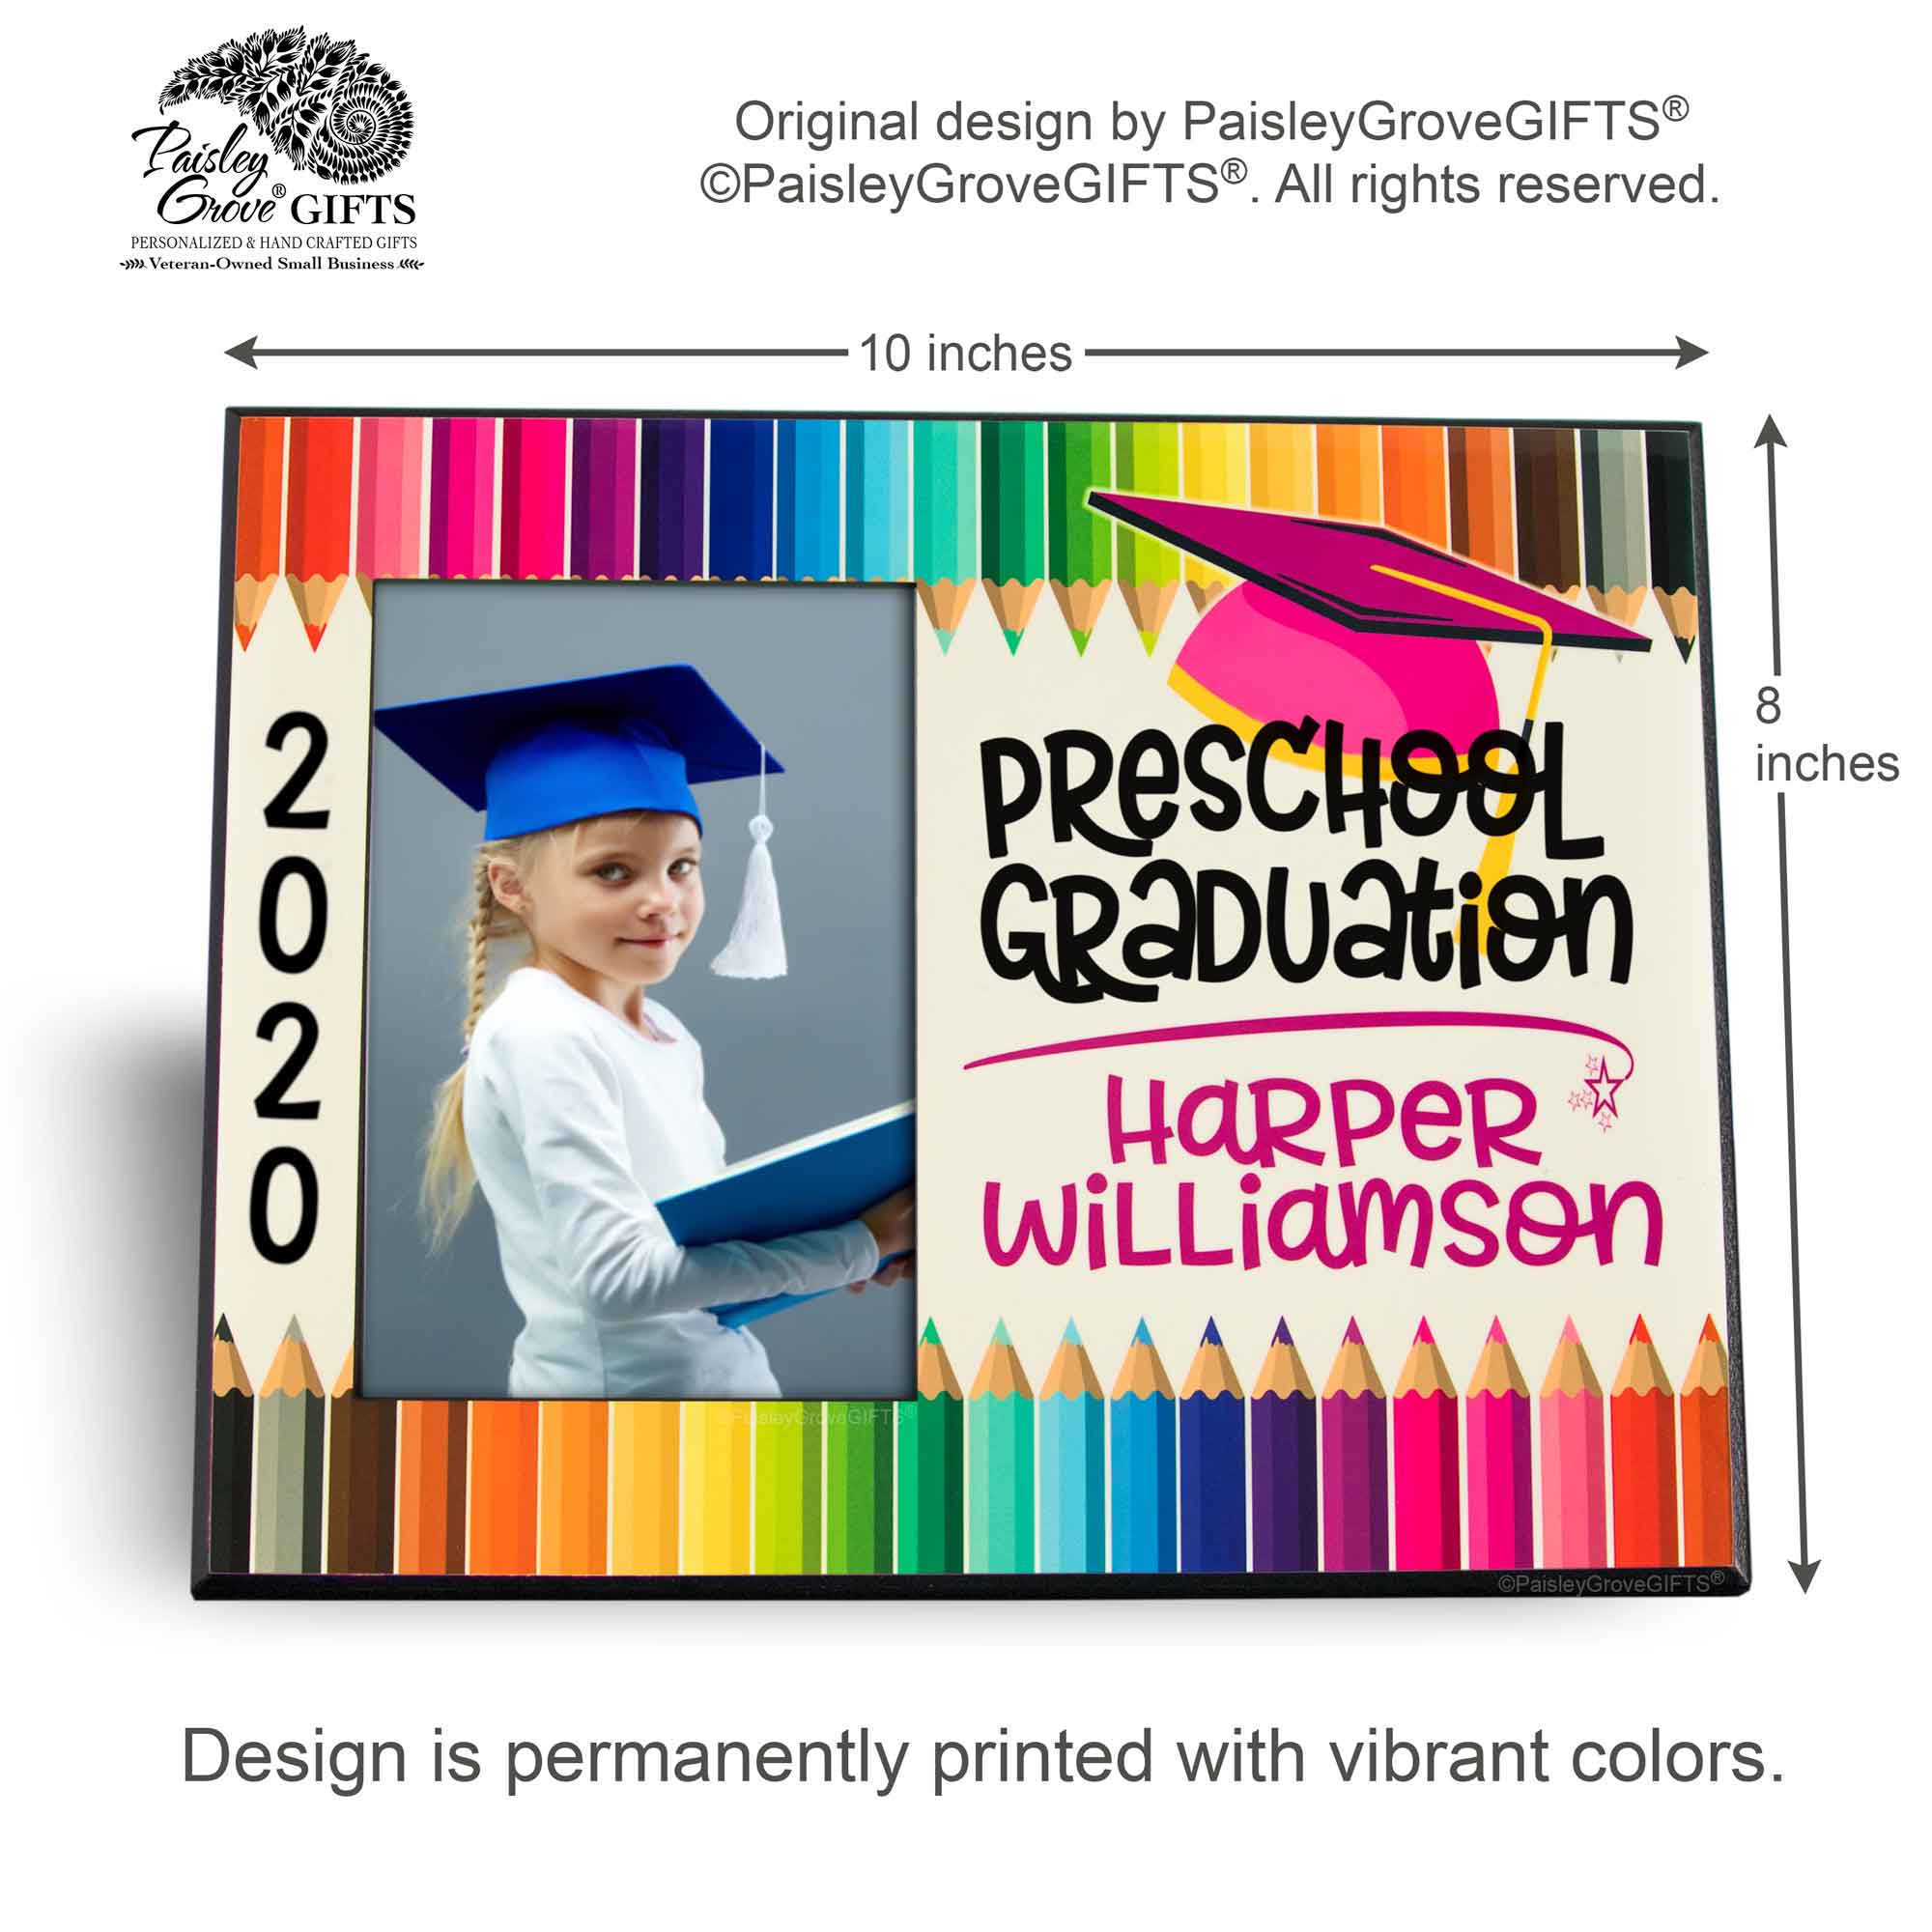 CopyrightPaisleyGroveGIFTS S228d Measurements for Customized Graduation Keepsake Preschool Graduate Frame